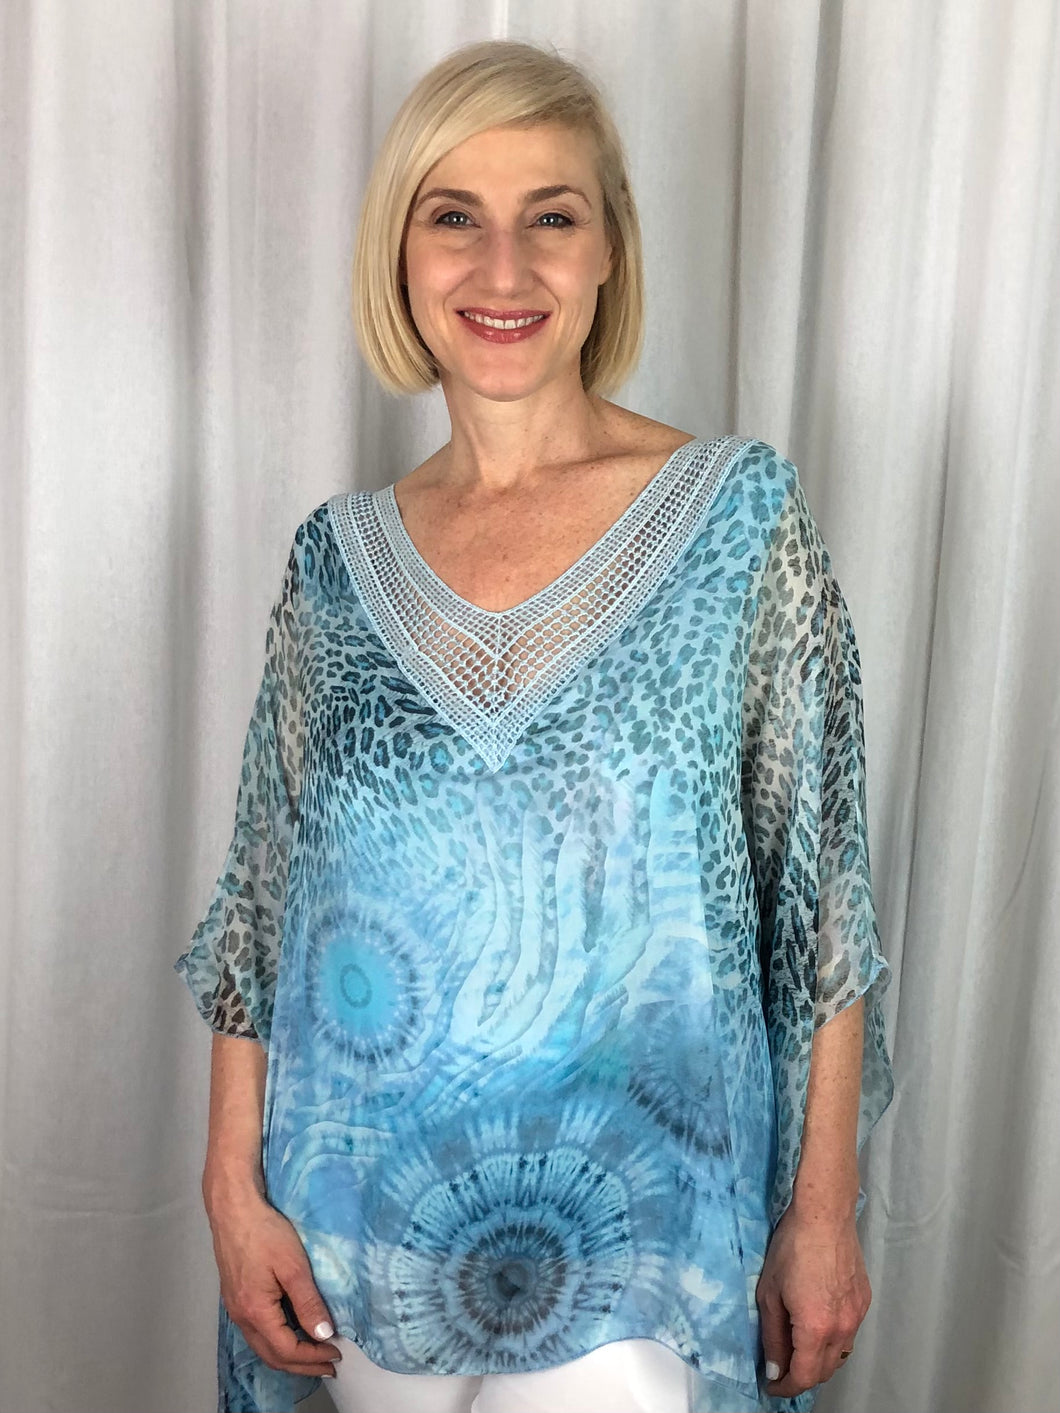 Looking for that special piece this Summer, look no further than our Celeste Flutter Top in soft tones of turquoise. Made in Italy from a blend of Silk, Viscose and Elastane this gorgeous top with camisole sewn underneath features a feminine sequinned and crocheted V-Neck.